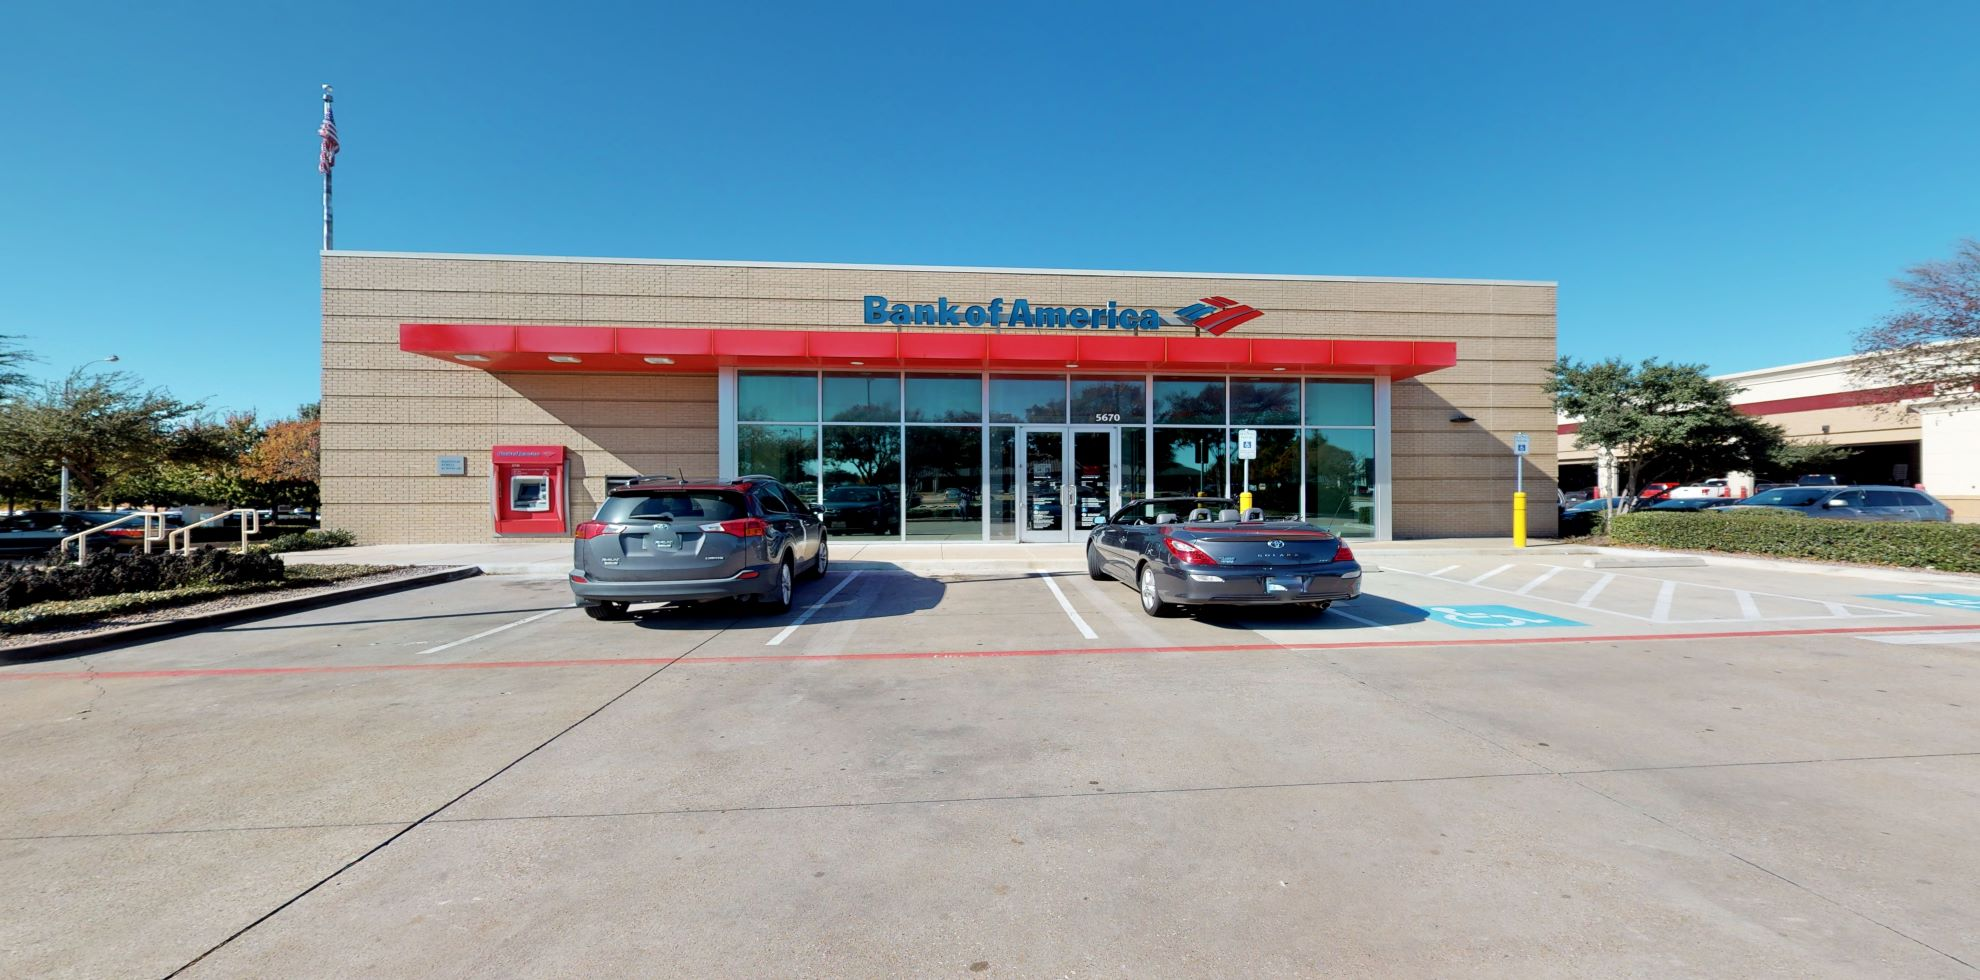 Bank of America financial center with drive-thru ATM | 5670 Bryant Irvin Rd, Fort Worth, TX 76132